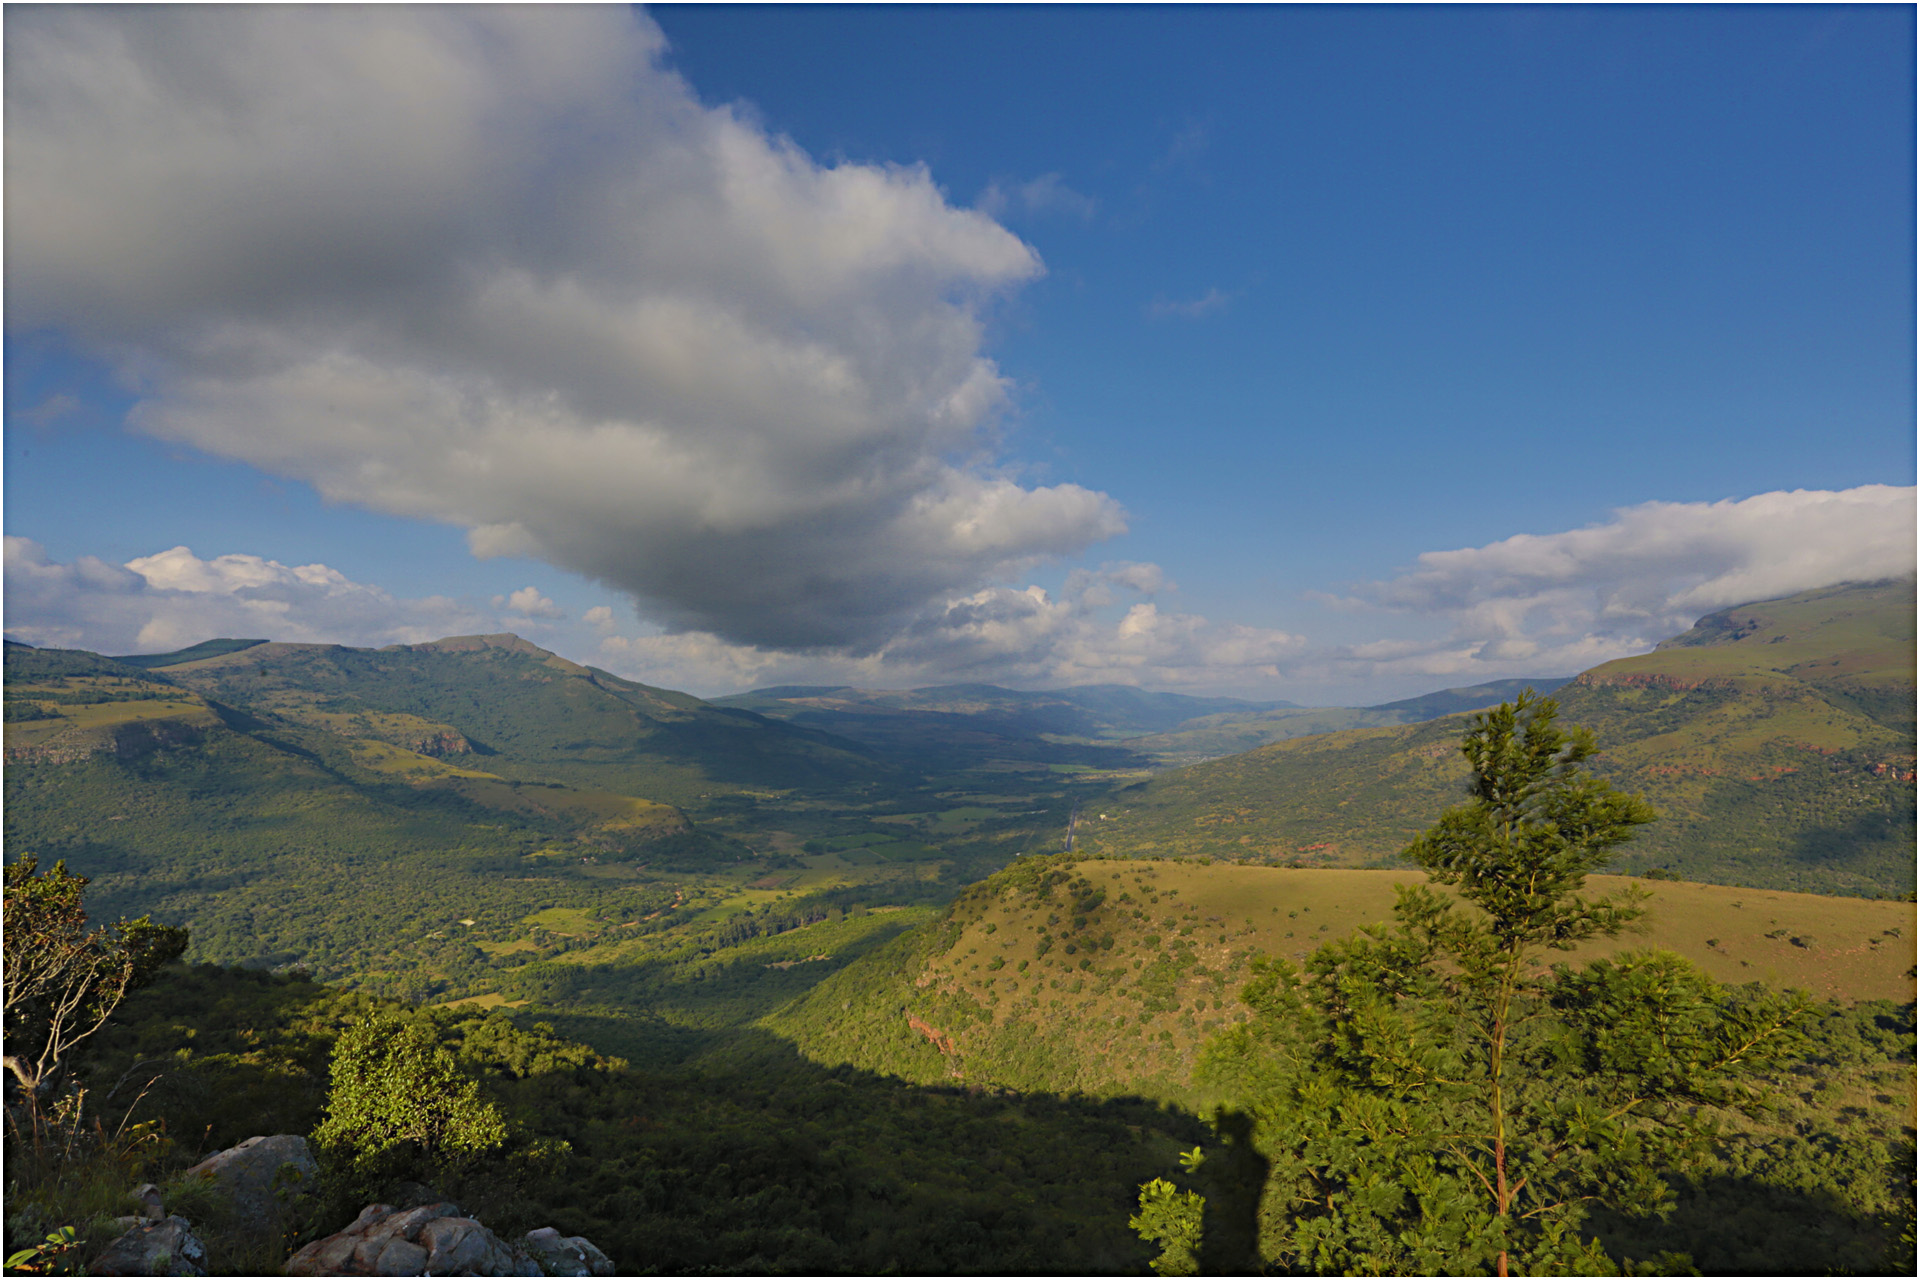 mpumalanga accommodation prices and rates Drakenzicht The Mountain Links